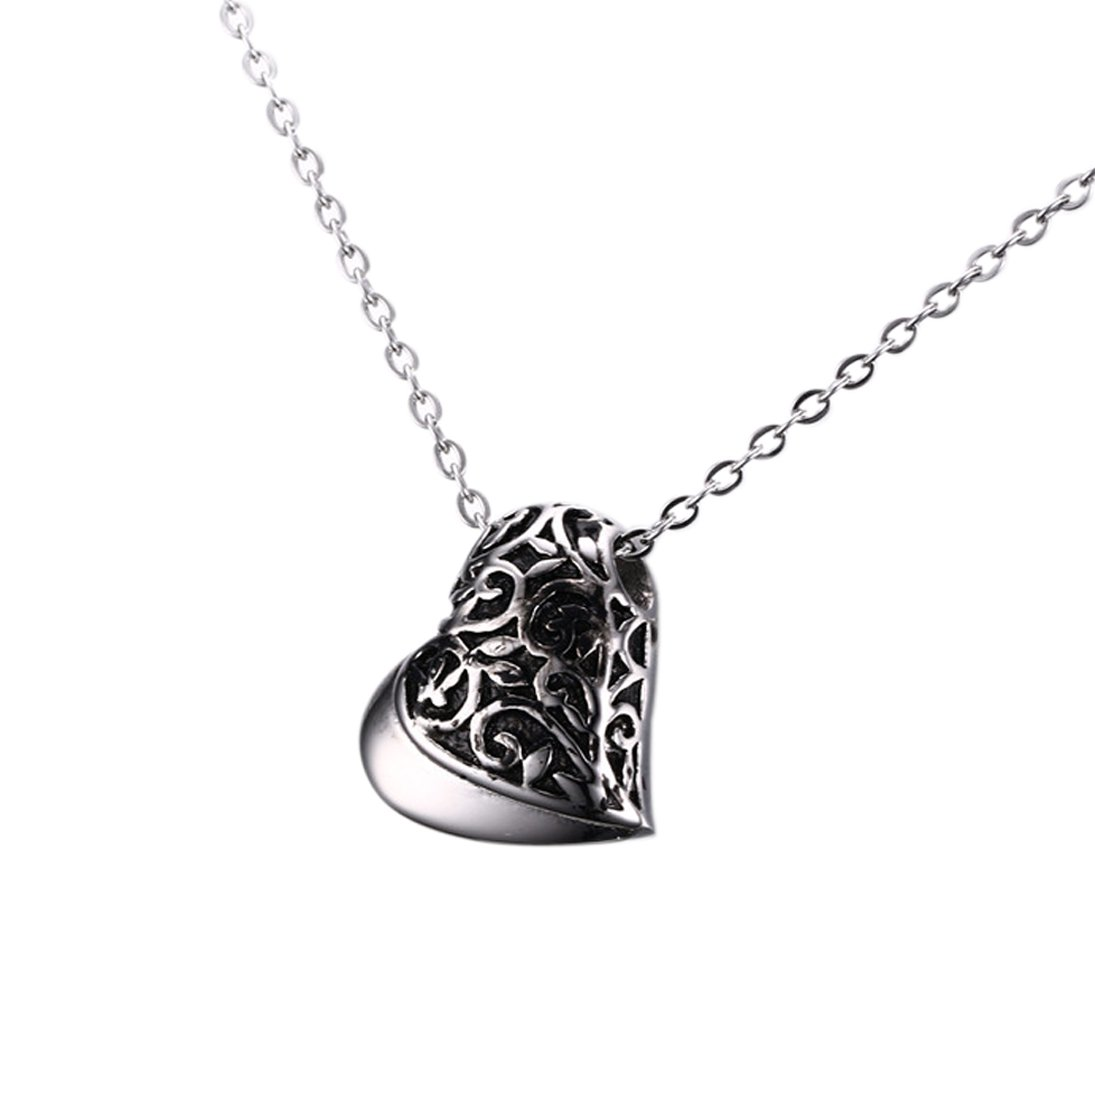 Perfect Memorial Heart Shape Cremation Keepsake Necklace Urn, Stainless Steel Memorial Jewelry